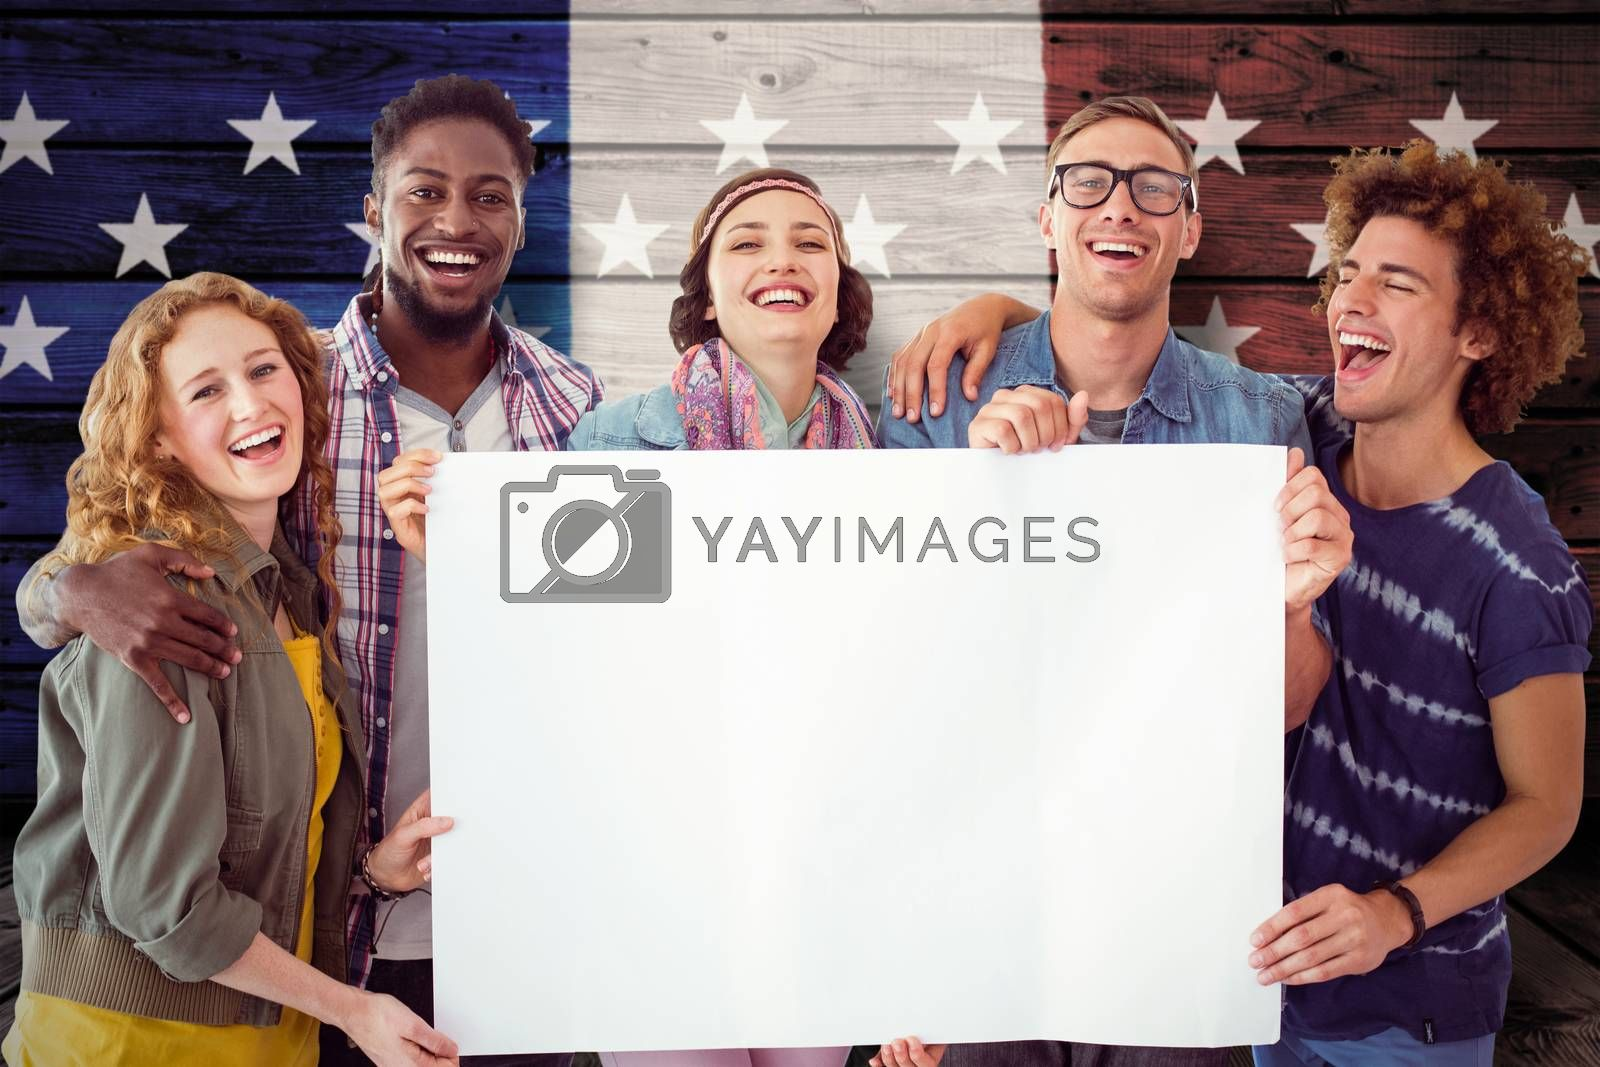 Fashion students smiling at camera together against composite image of usa national flag